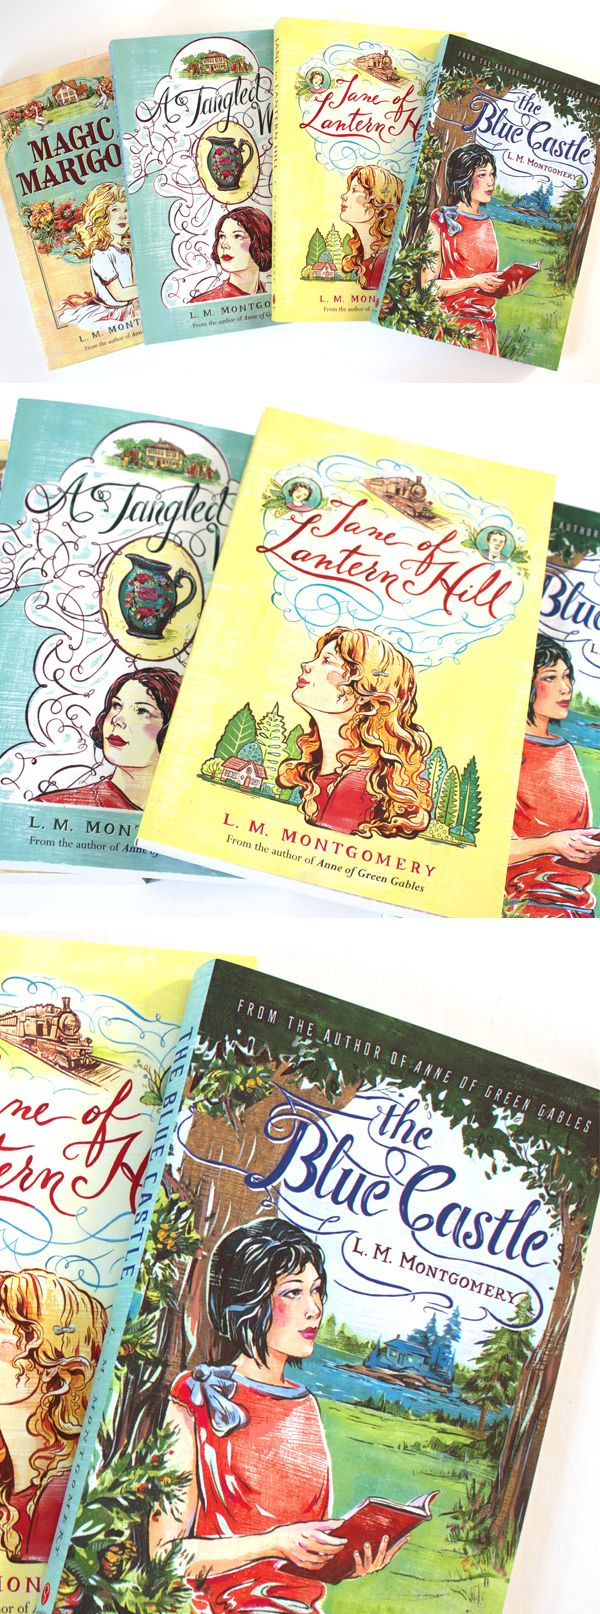 L.M. Montgomery Book Covers (Sourcebooks) - by Jacqui Oakley Illustration & Lettering